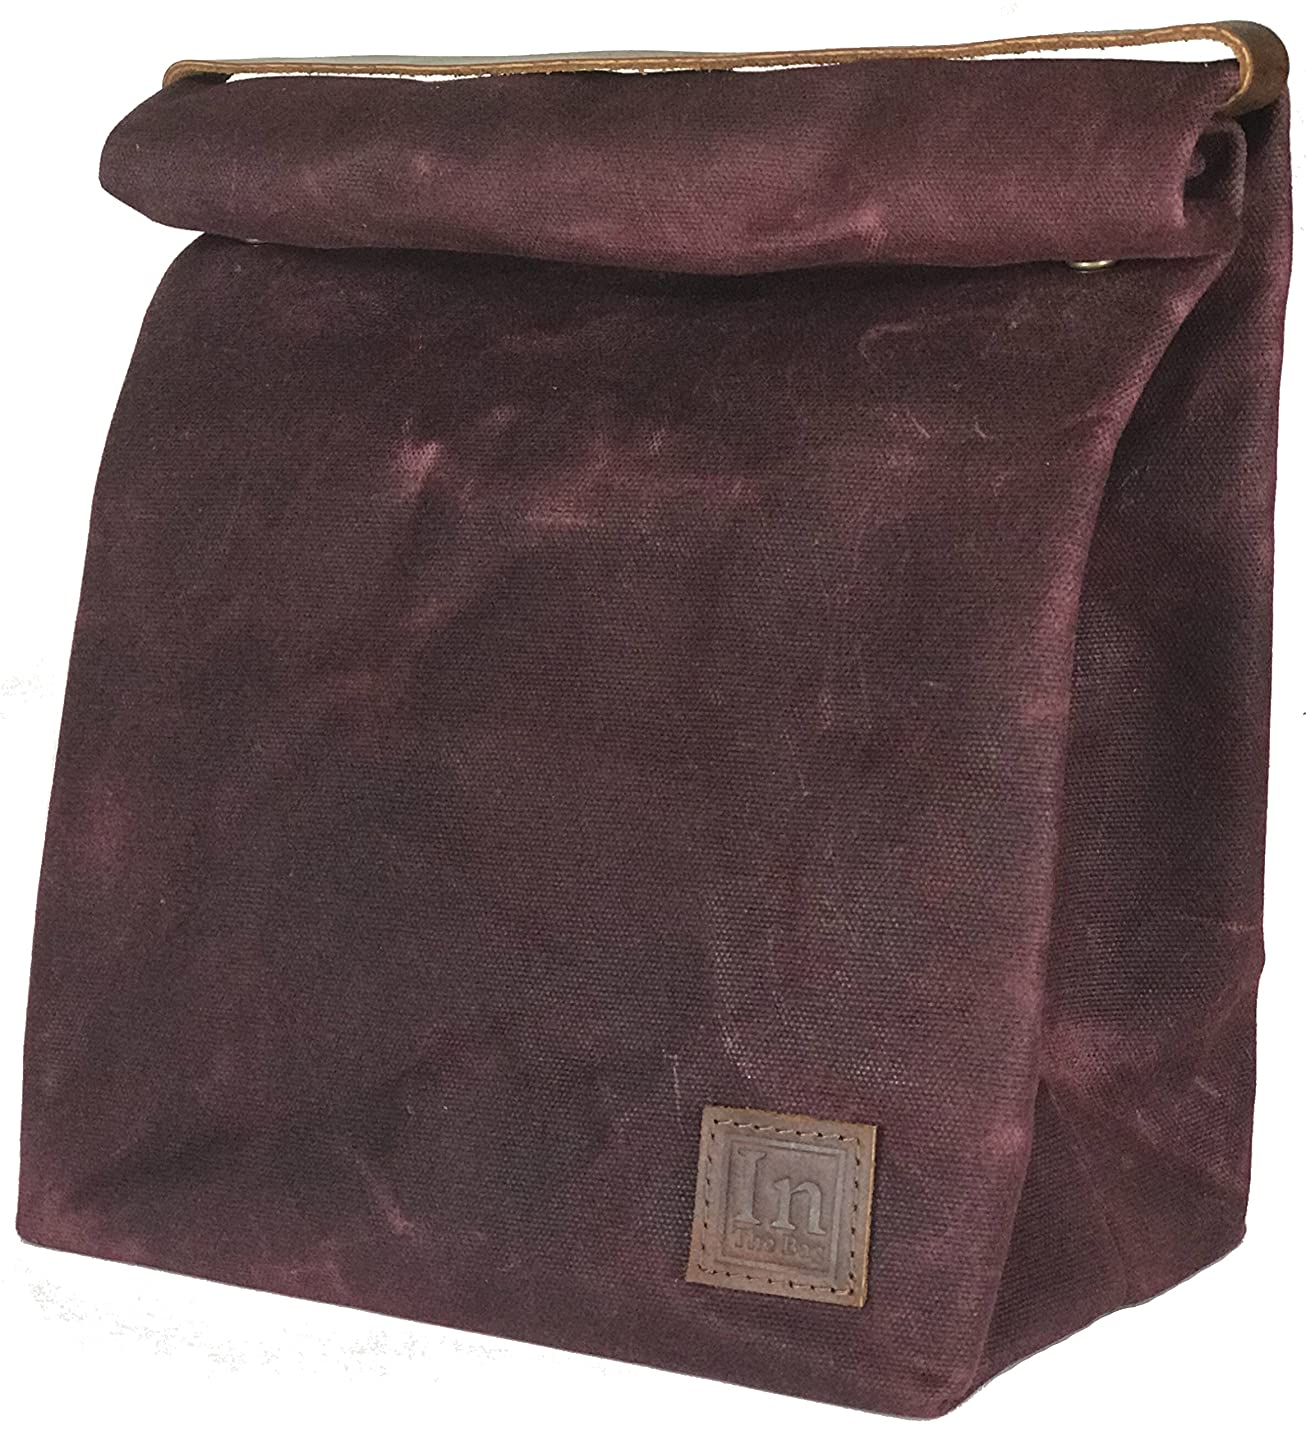 Lunch Bag (Lunch Box) Large Lined Waxed Canvas Roll Top Tote Bag with Leather Strap Carrying Handle and Brass Snap Closure - Red Wine - by In The Bag